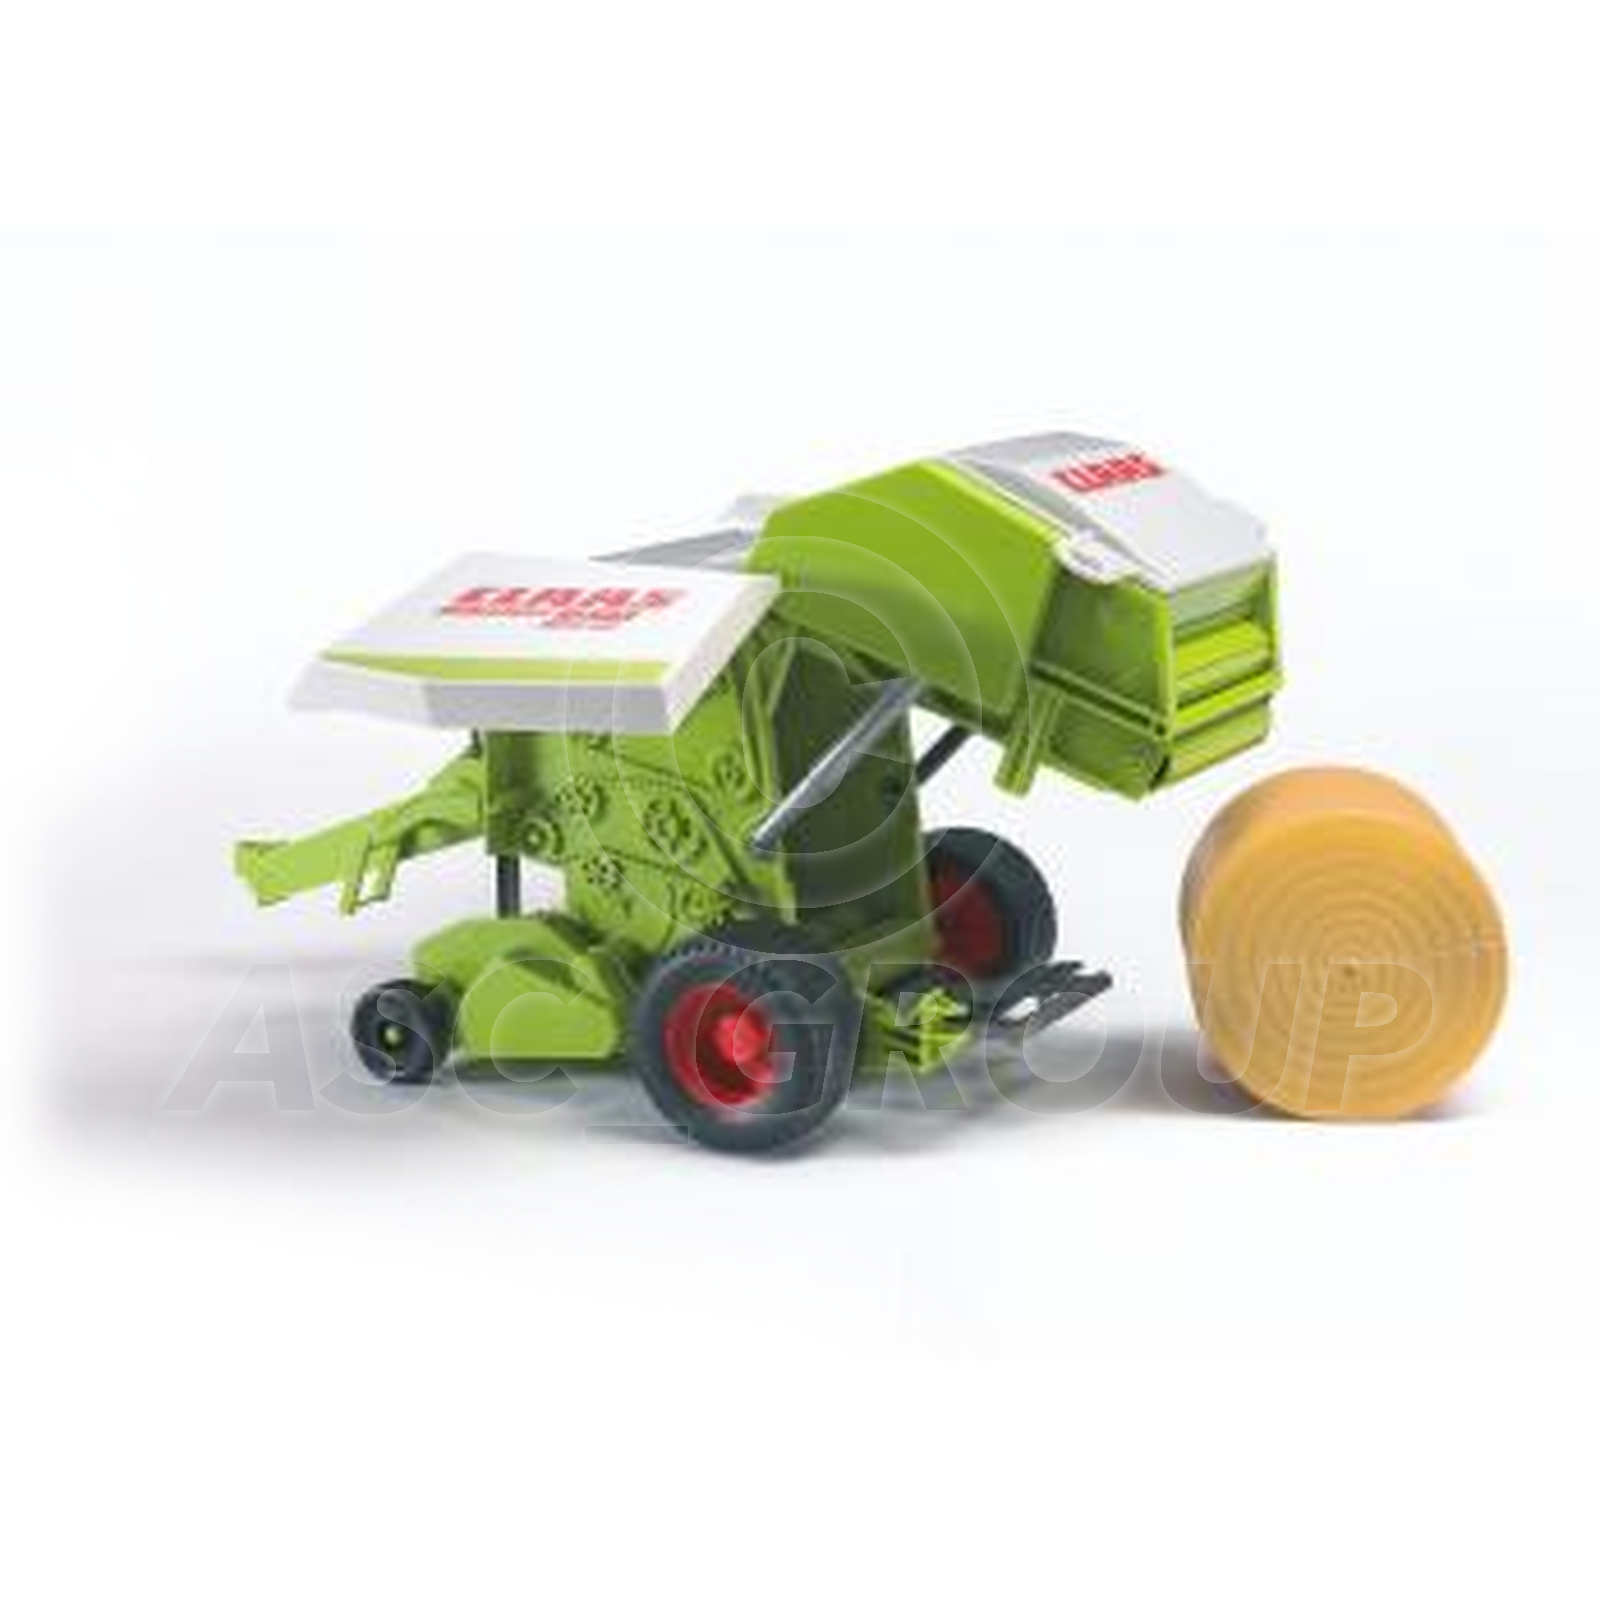 Bruder Claas Details About Bruder Toys 02121 Pro Series Claas Round Bailer Rollant 250 Toy 1 16 Scale